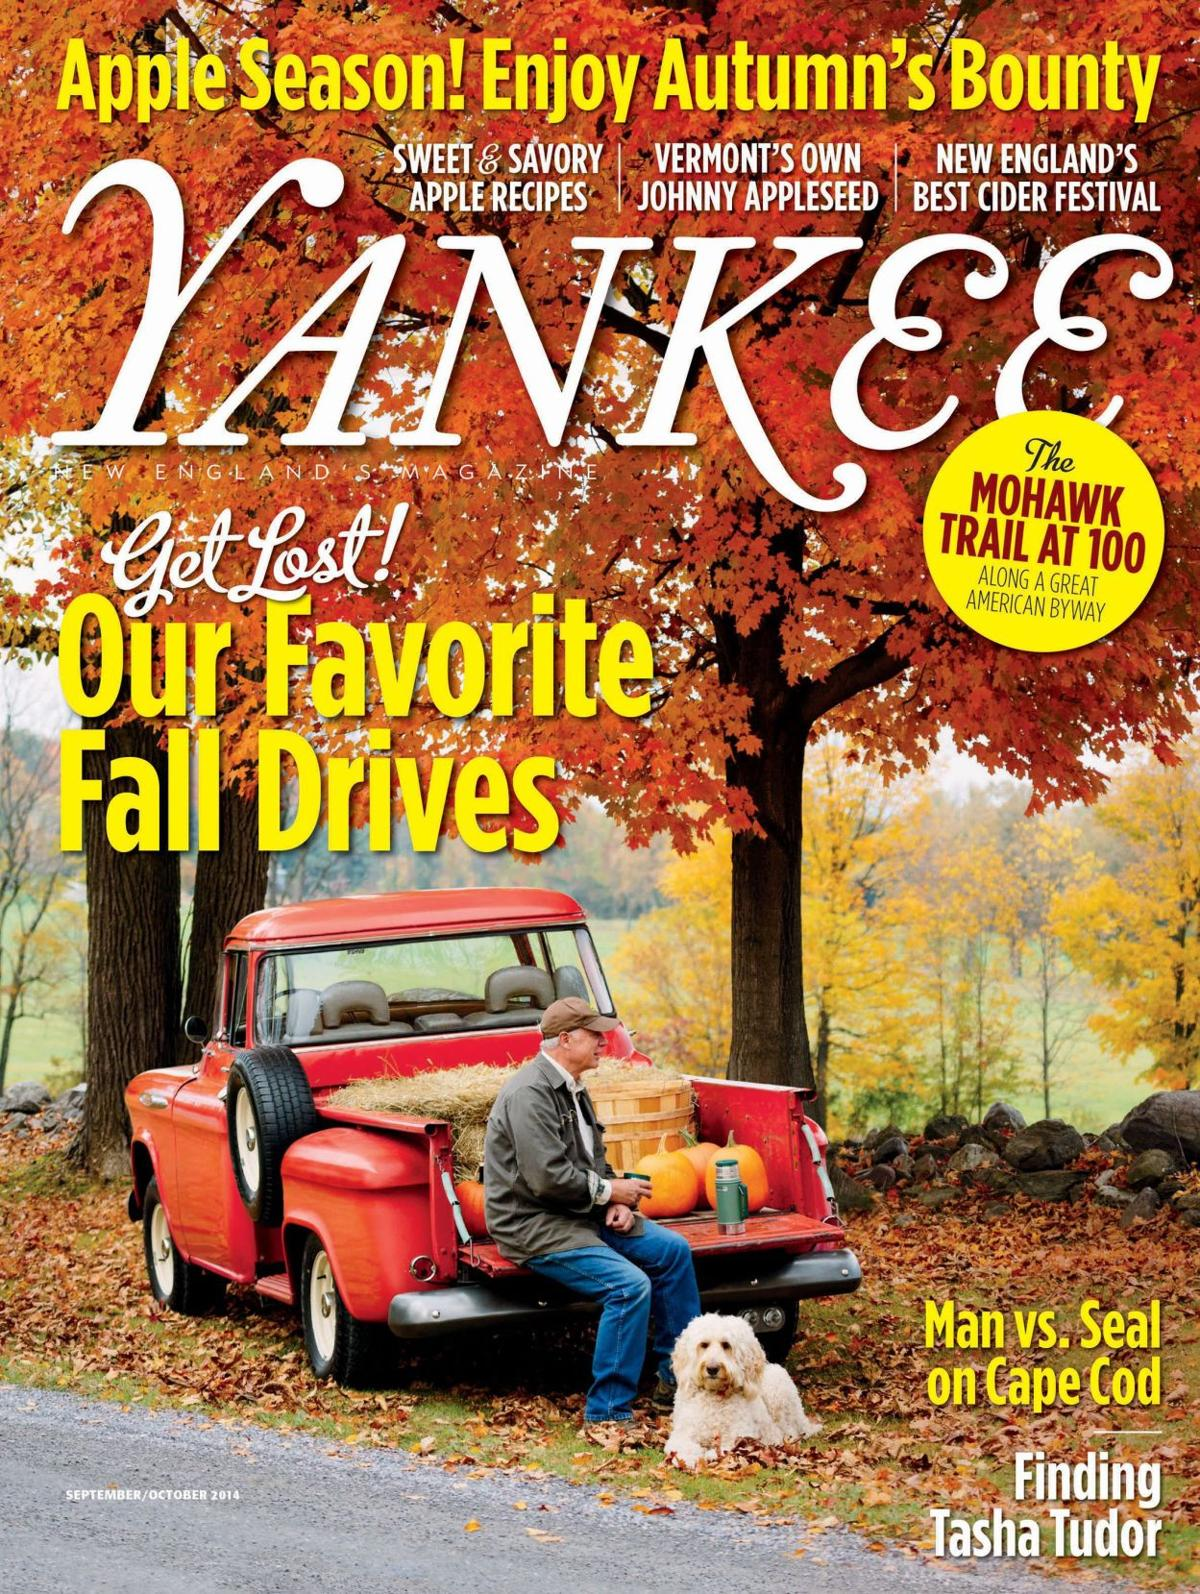 Yankee Mag offers ideas for trips to New England